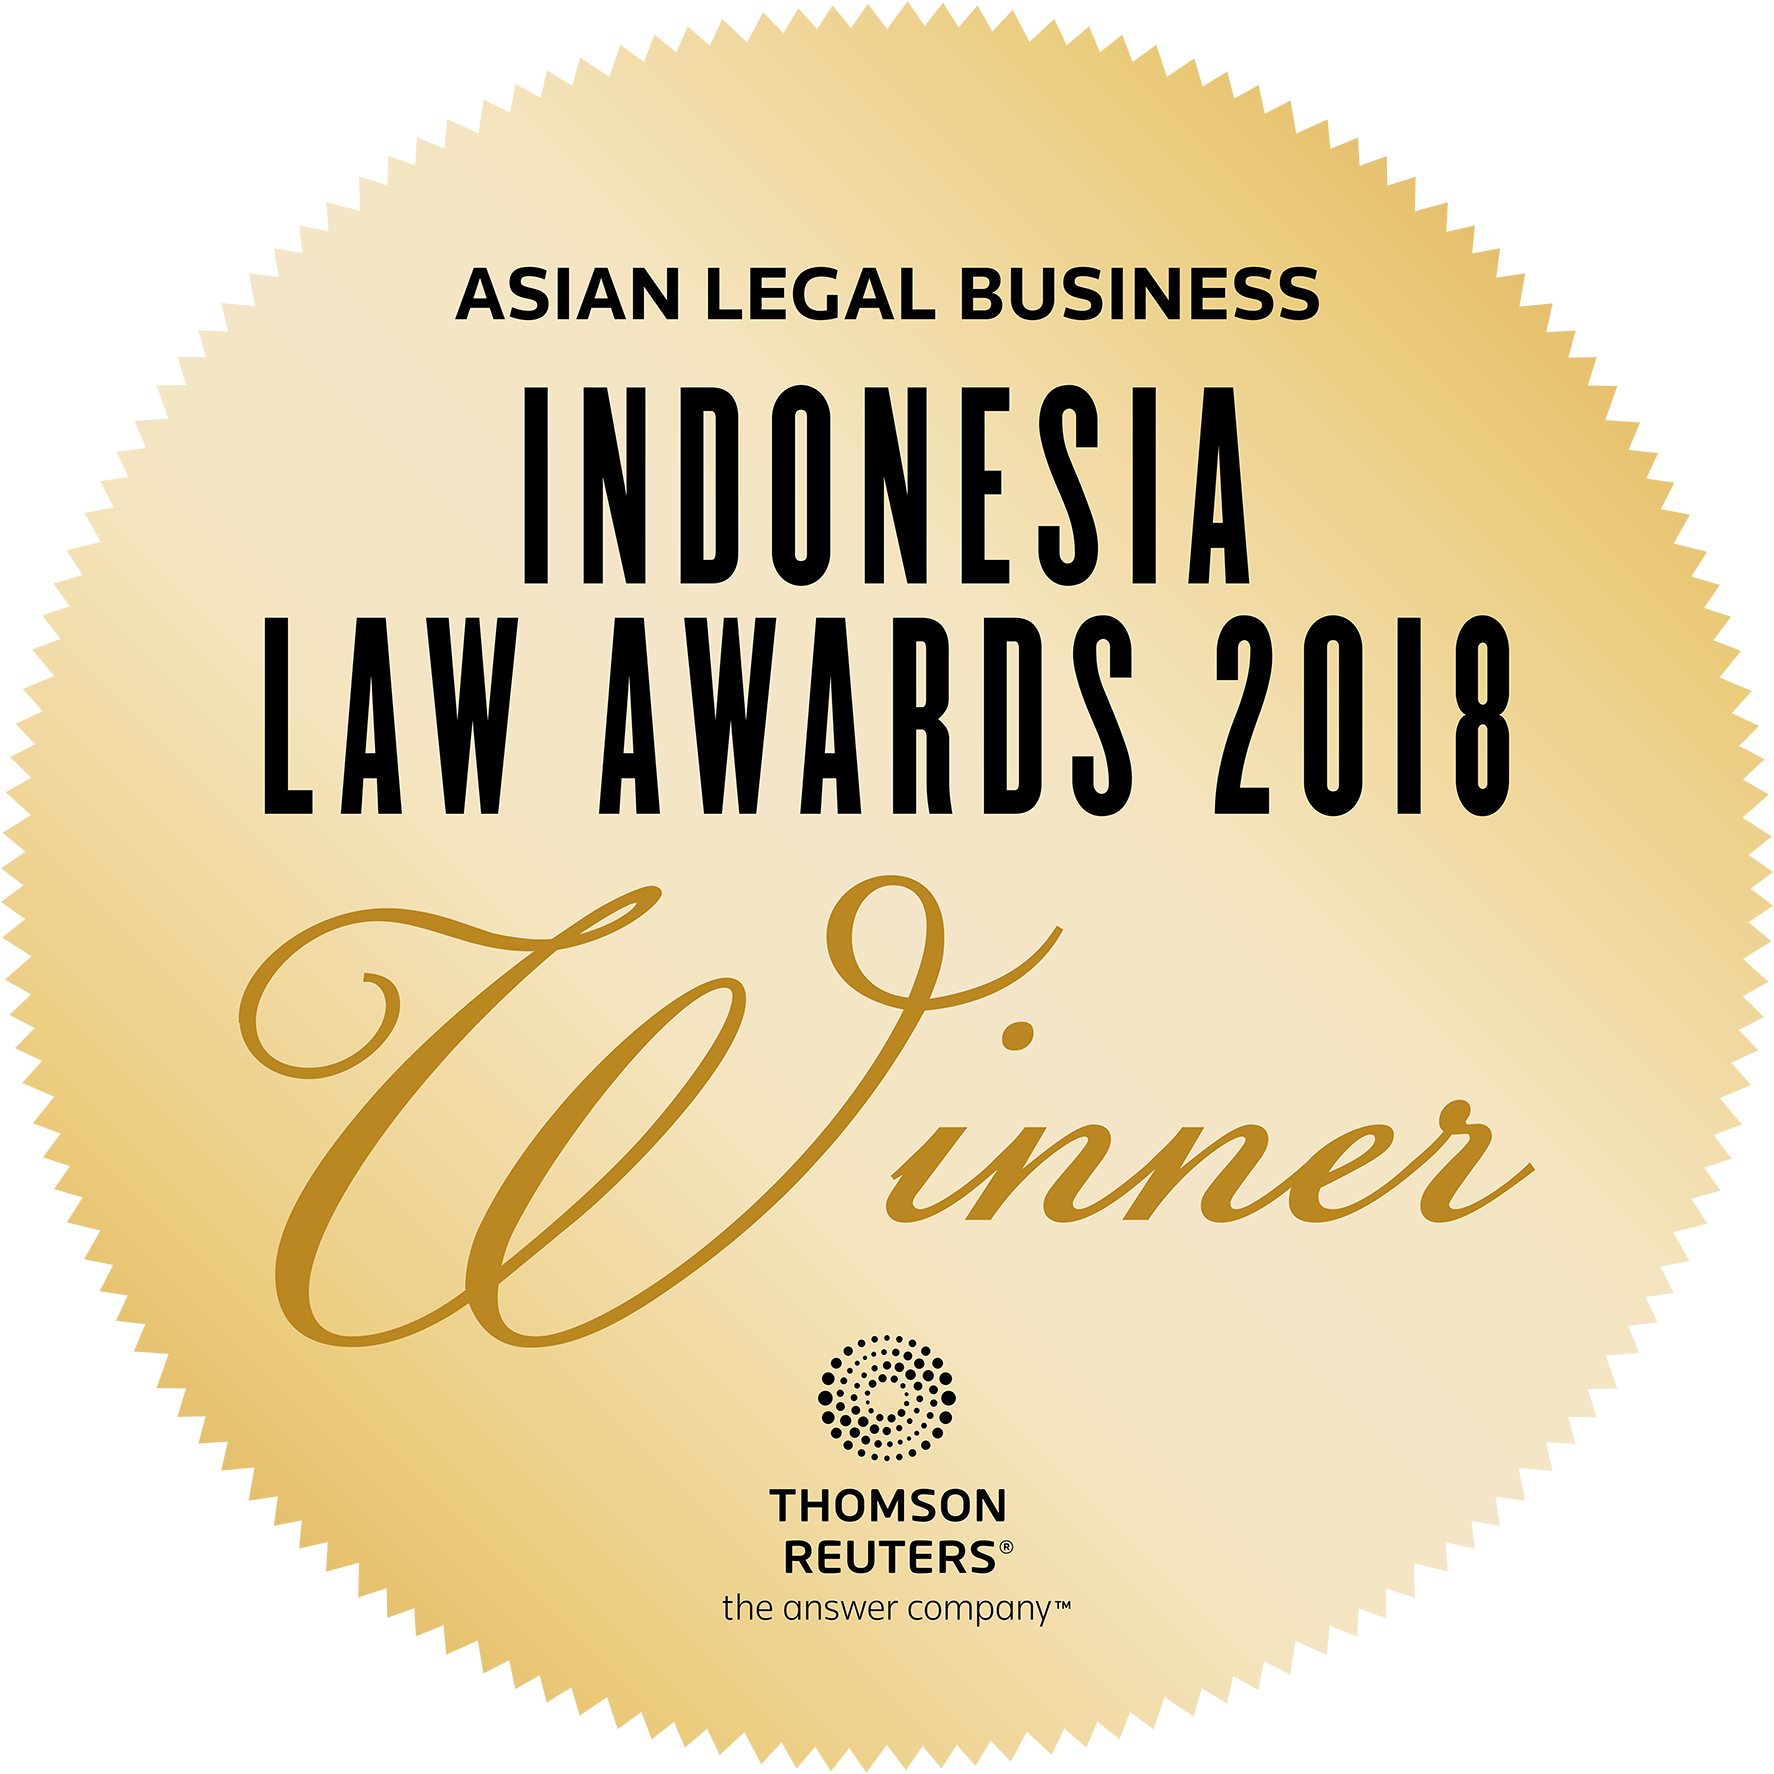 Asia Legal Business Indonesia Law Awards